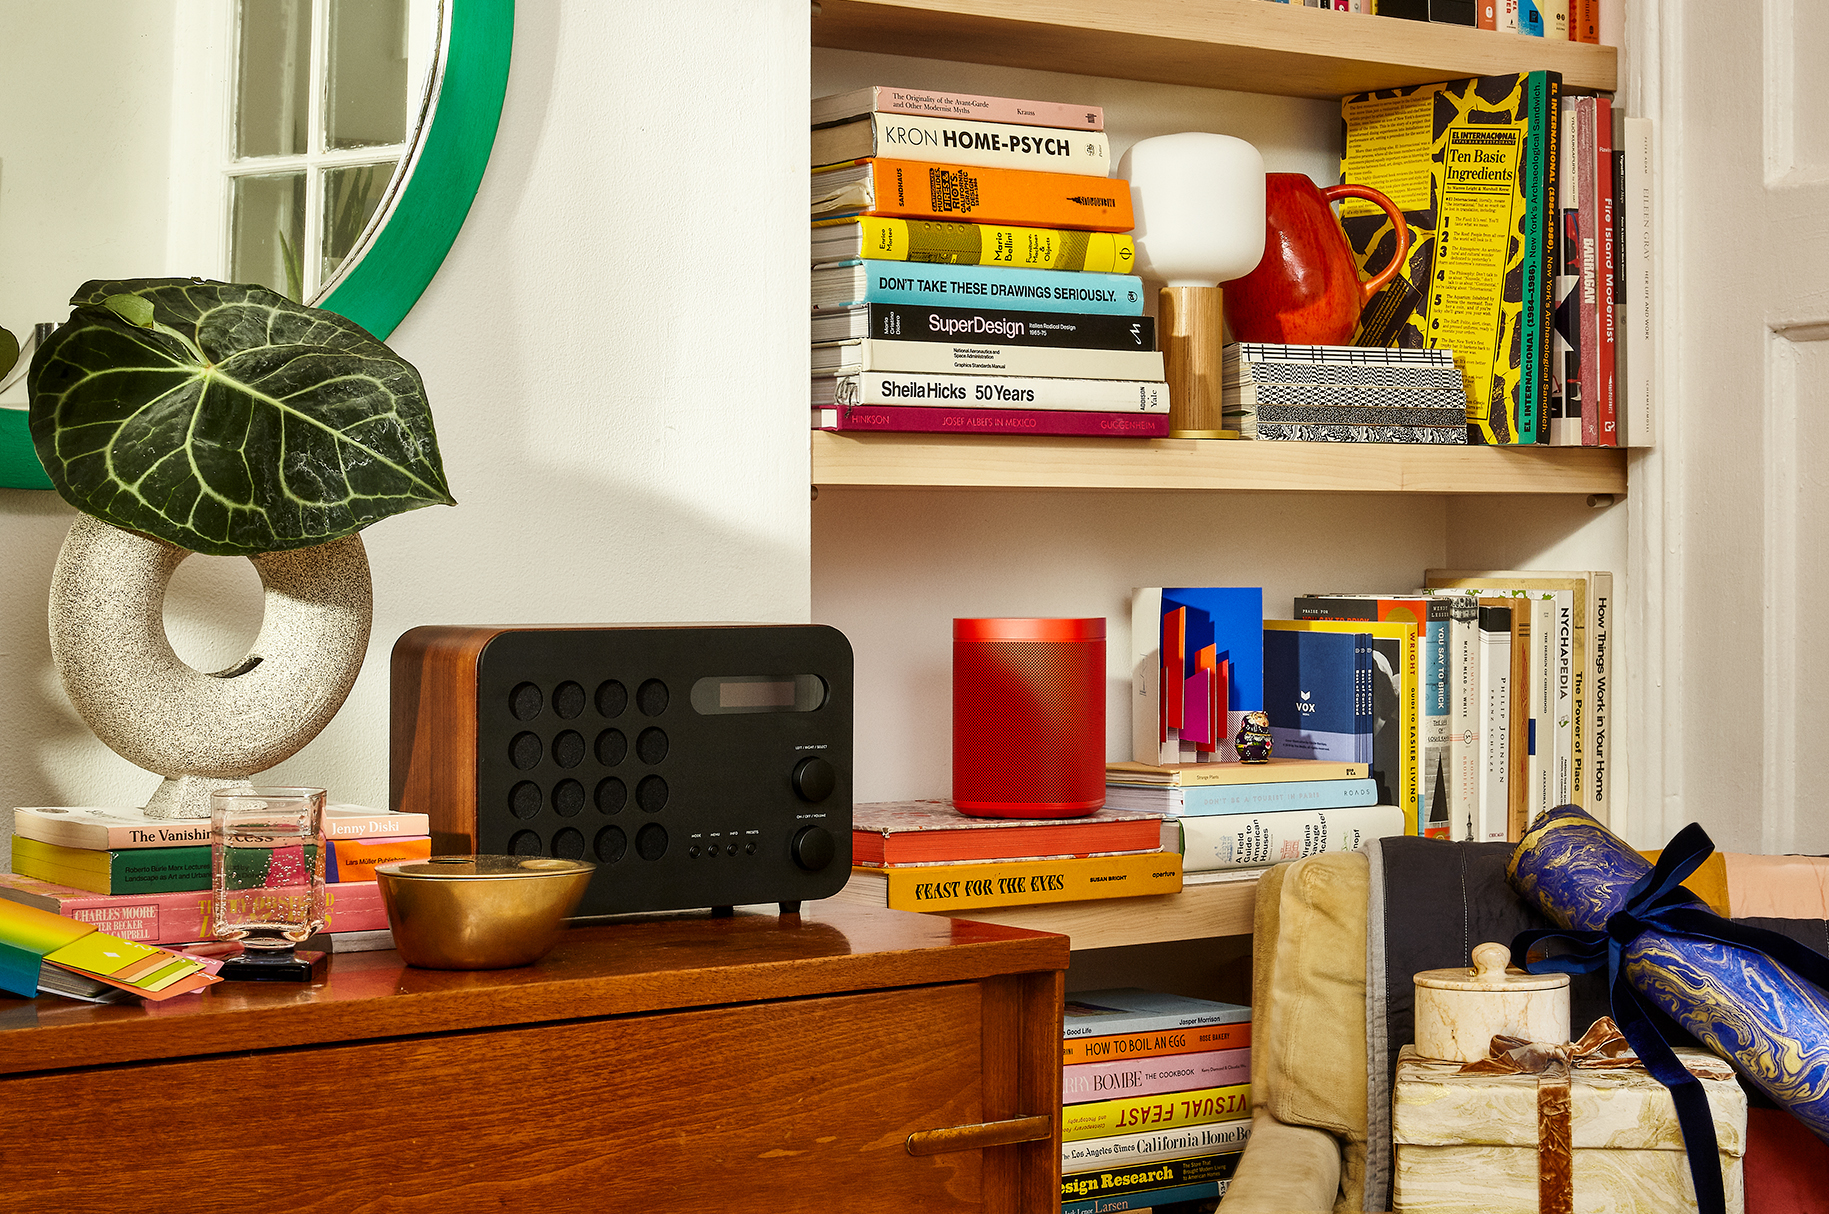 Multiple books and objects, like a speaker and lamp, line wooden shelves. A radio sits on top op of a wooden dresser with a mirror hung right above.